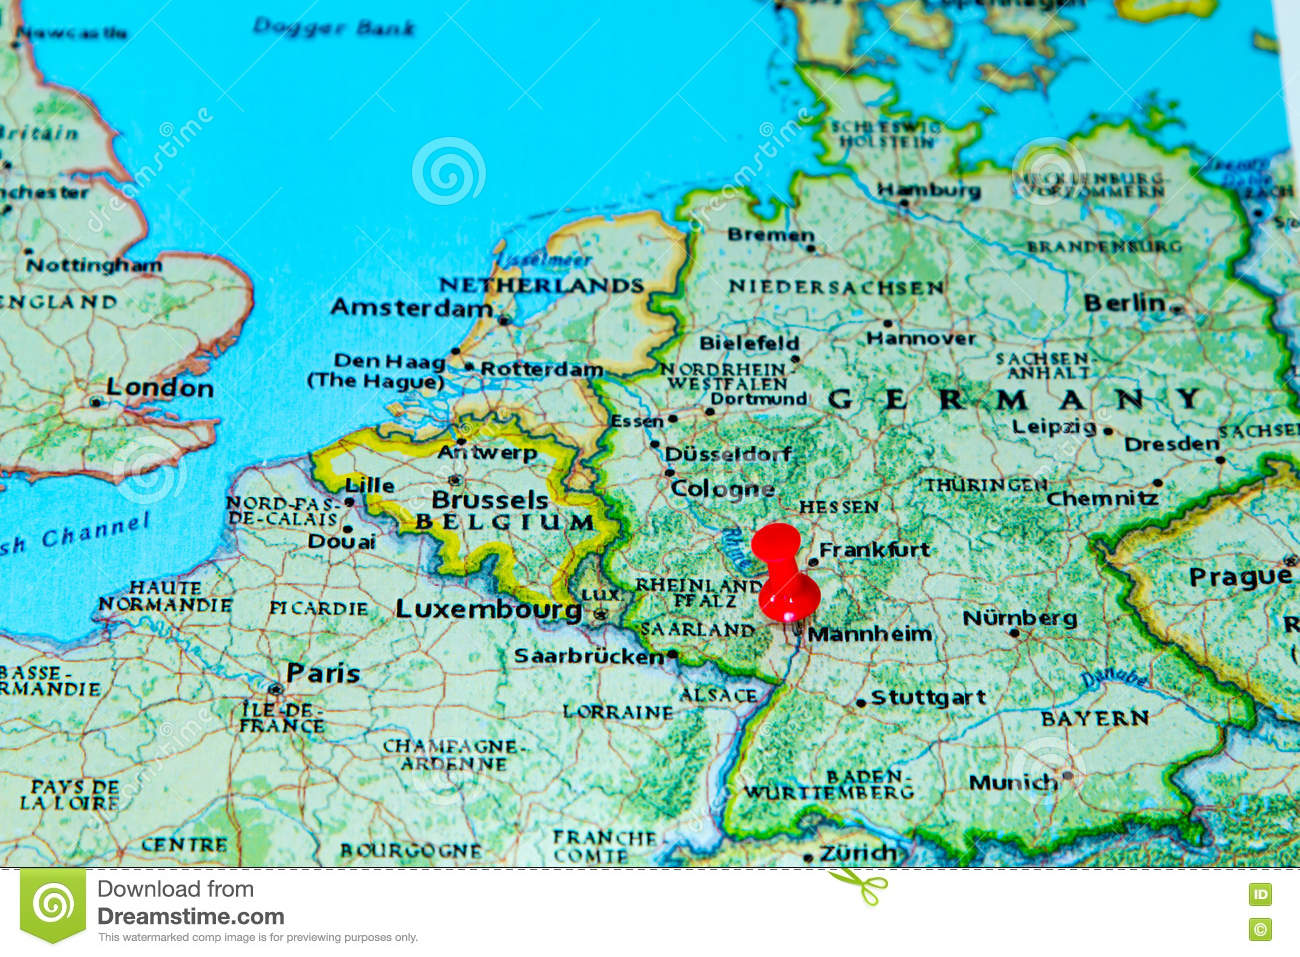 Mannheim Germany Pinned On A Map Of Europe Stock Photo Image Of